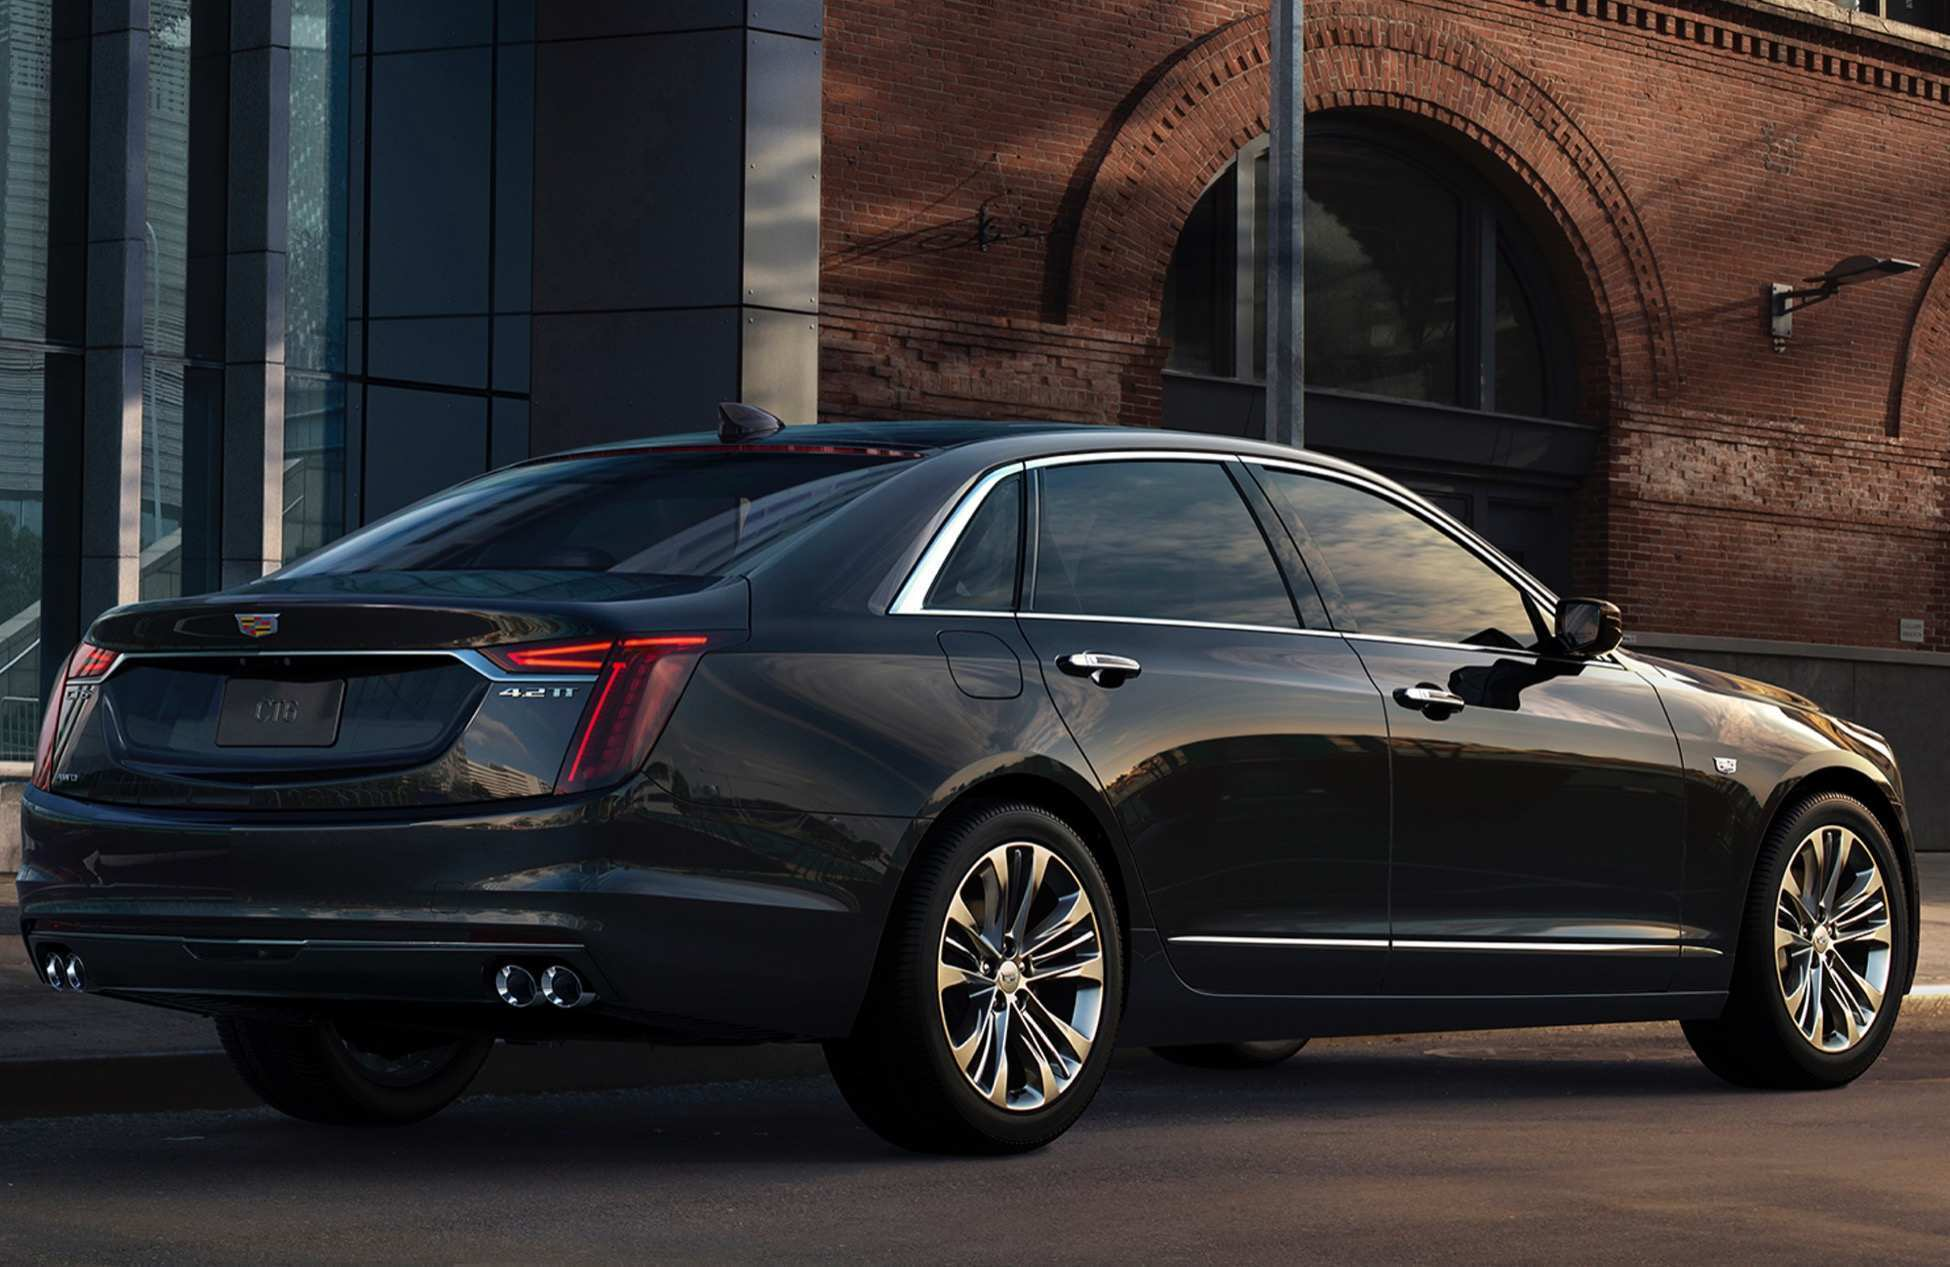 27 All New 2019 Cadillac CT6 Prices